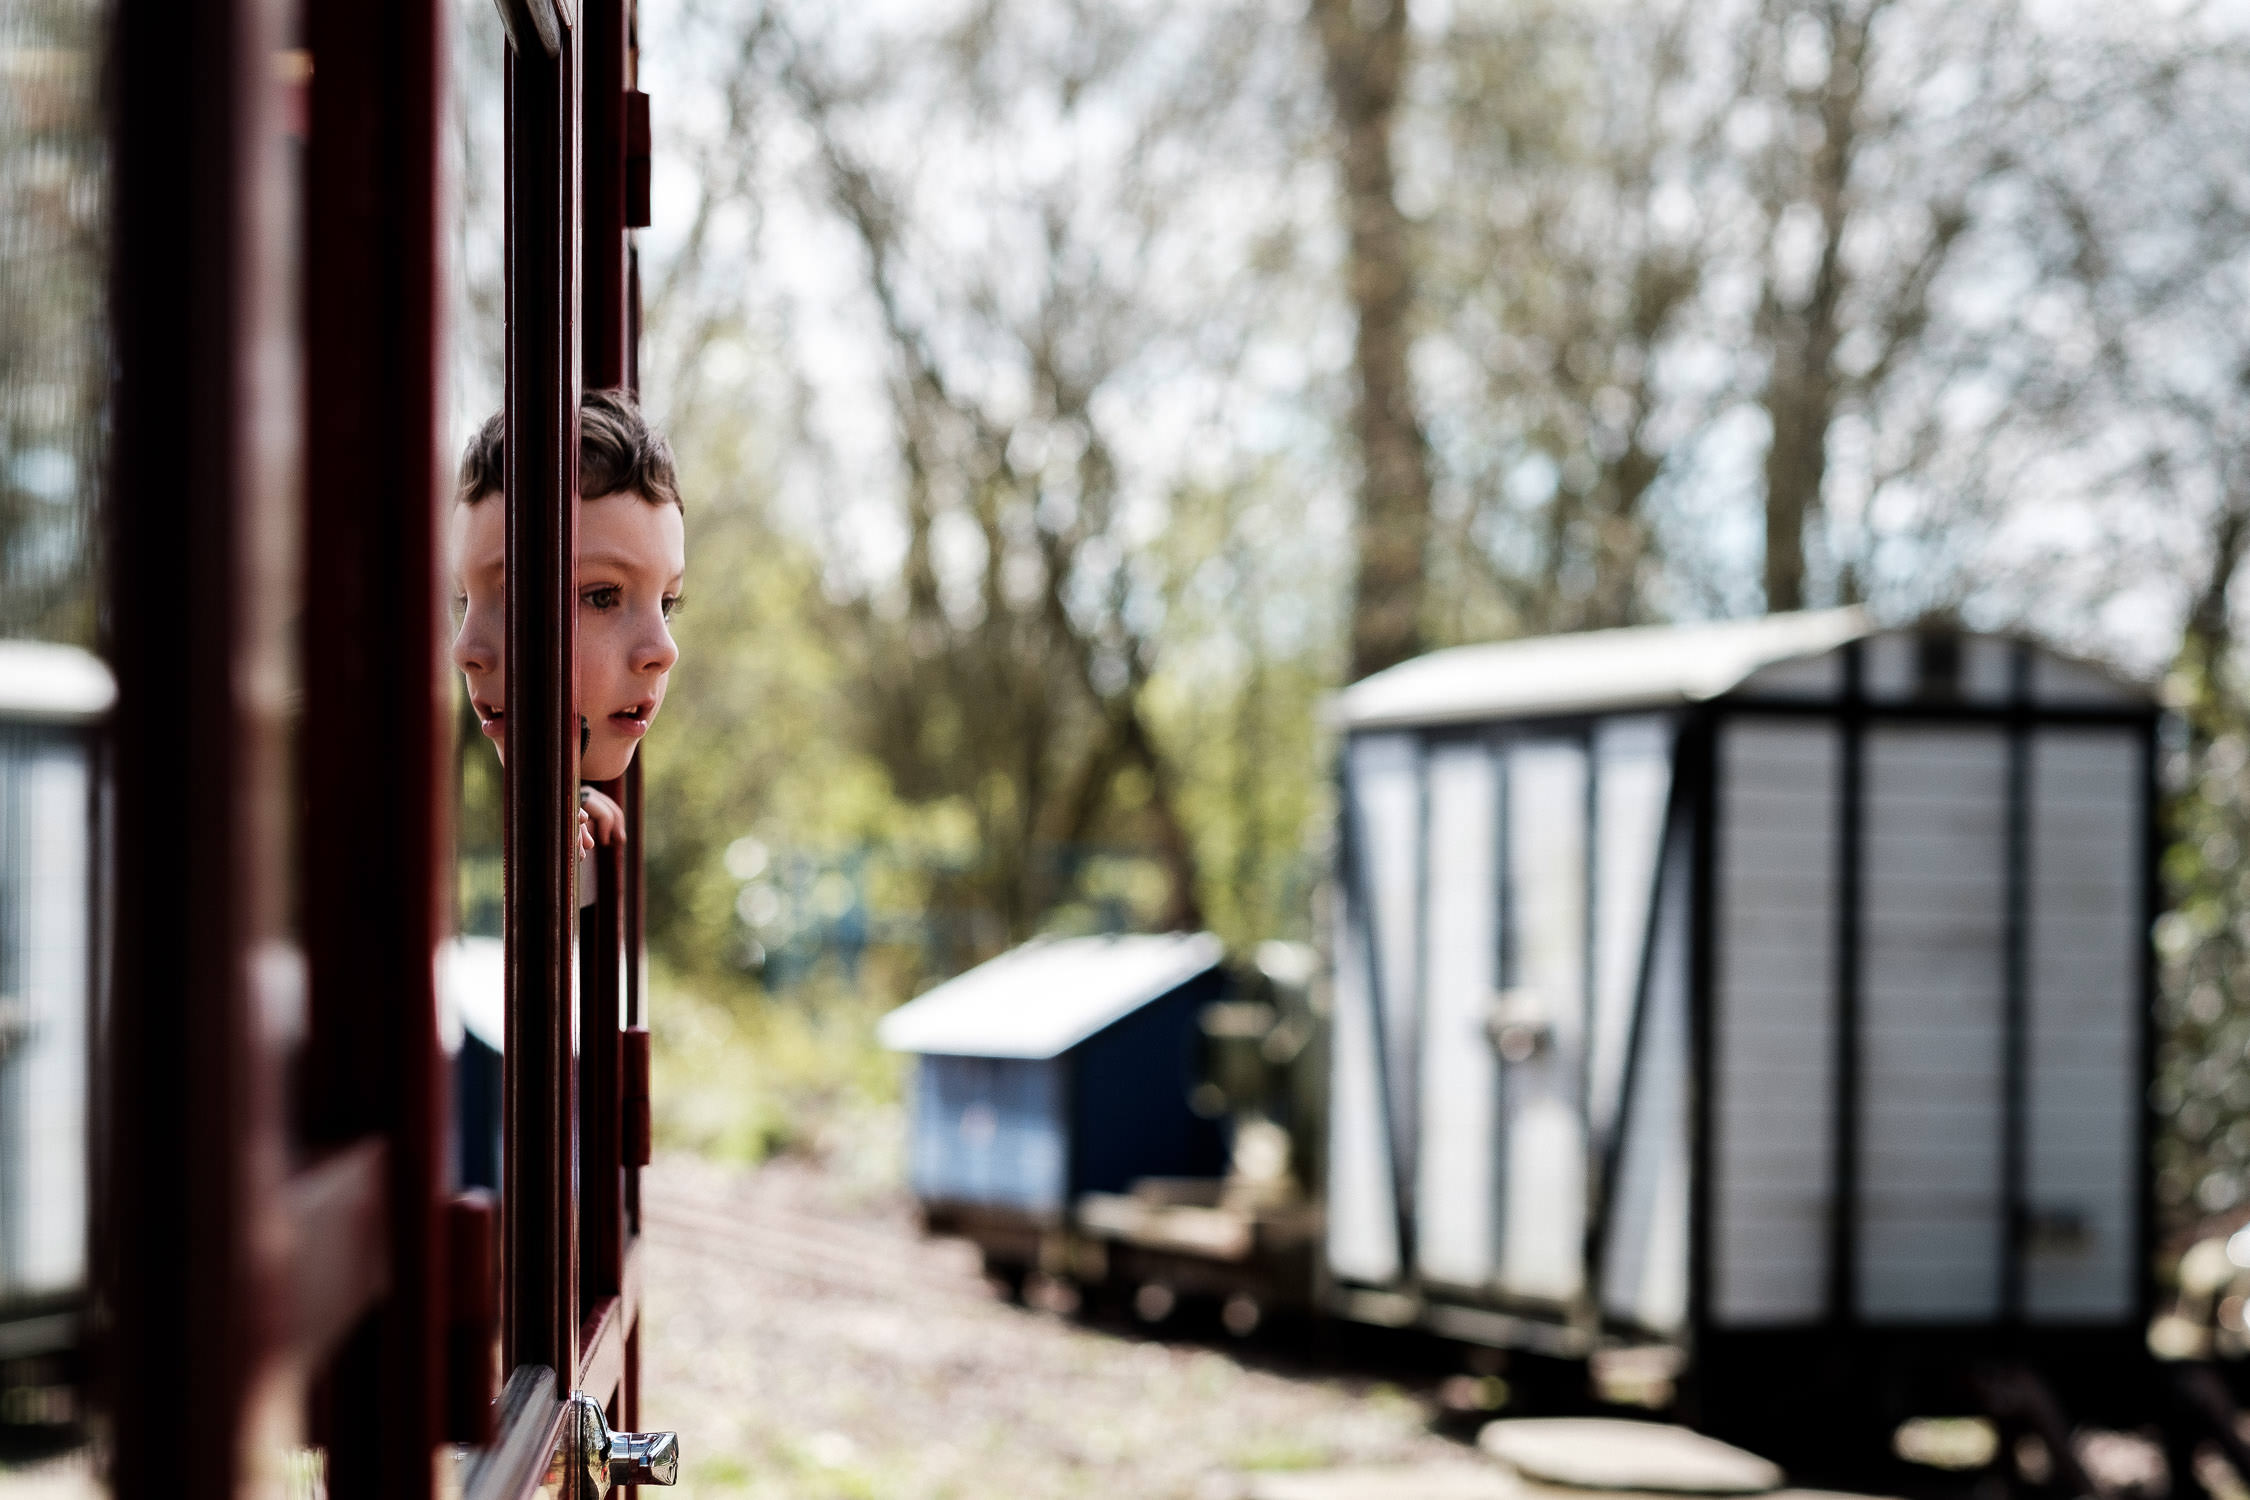 boy with head out of window on train